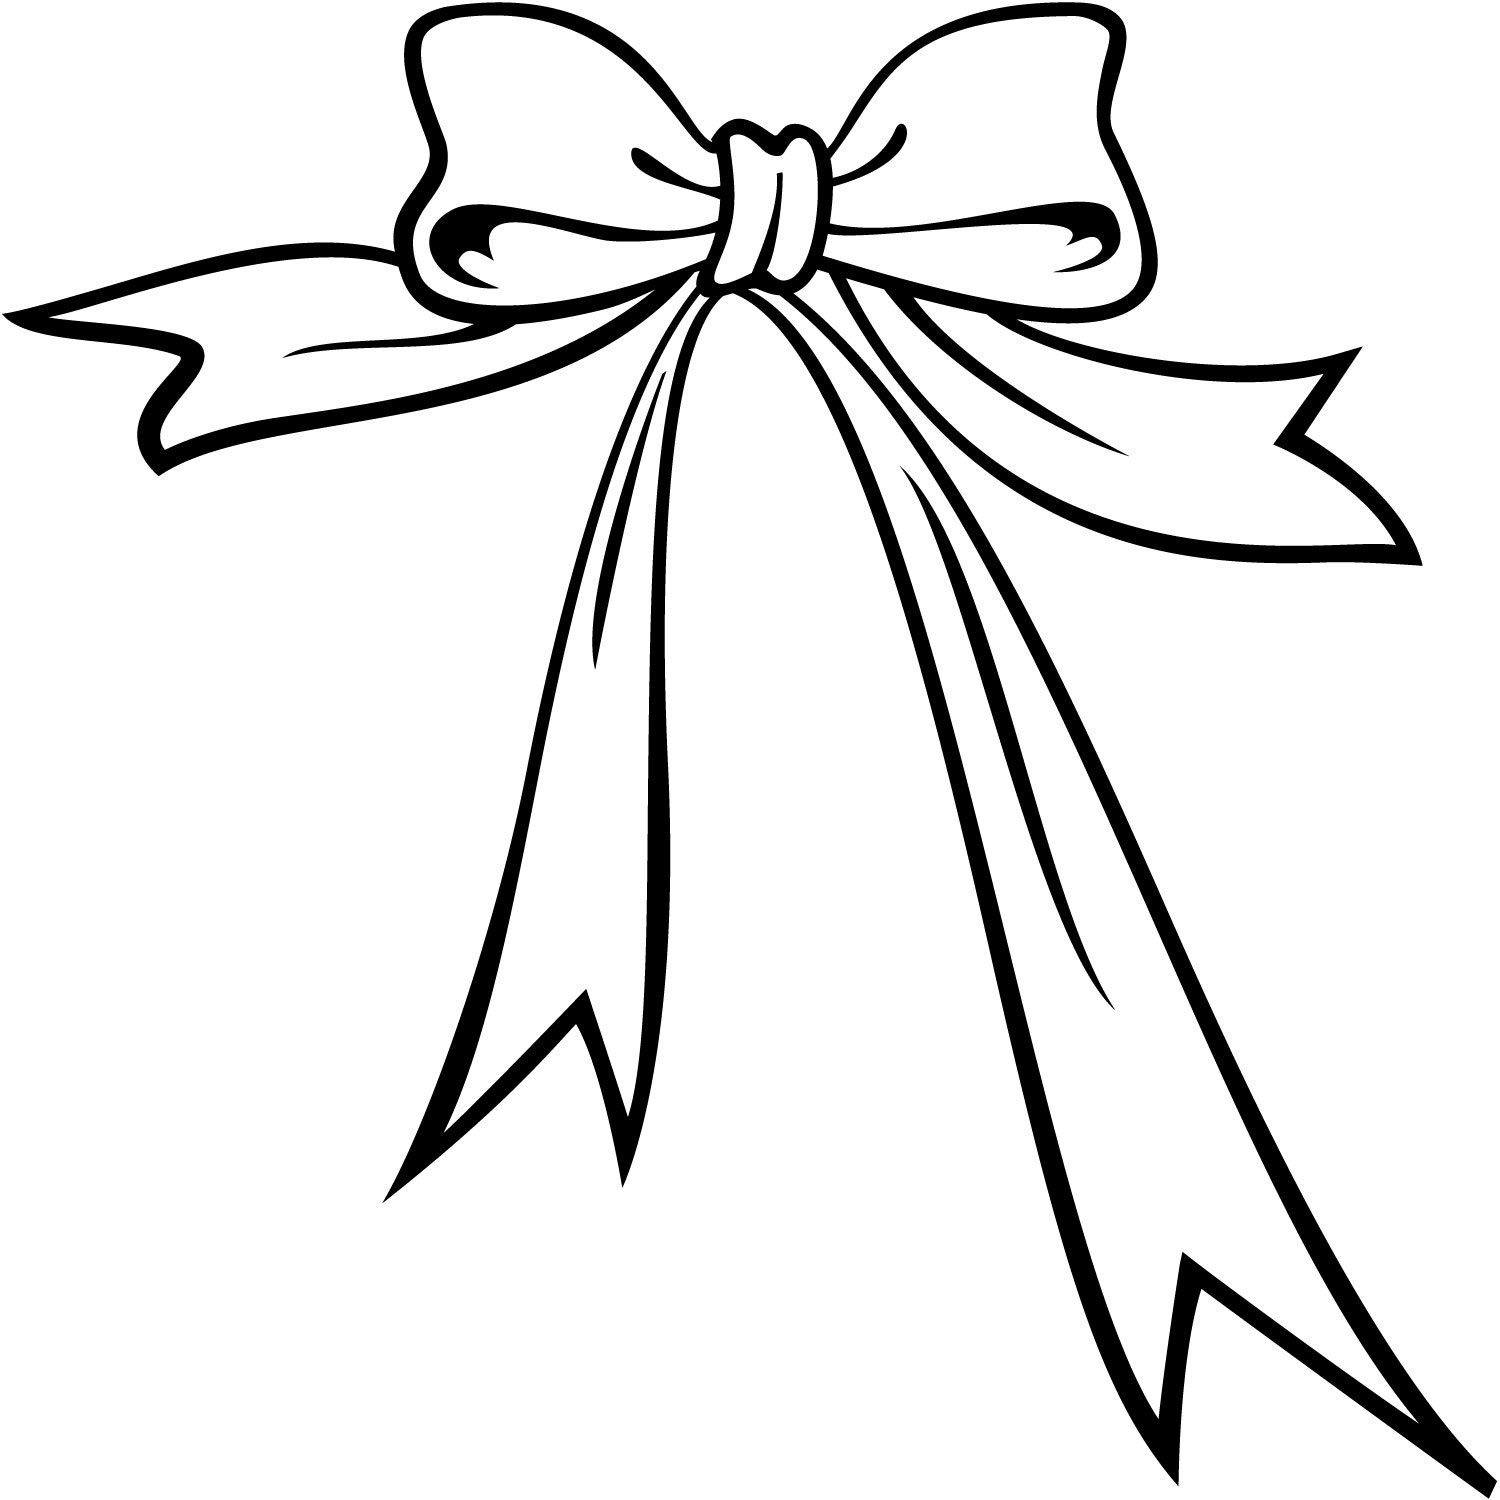 1500x1500 Minnie Mouse Bow Clip Art Free Clipart Images 2 2